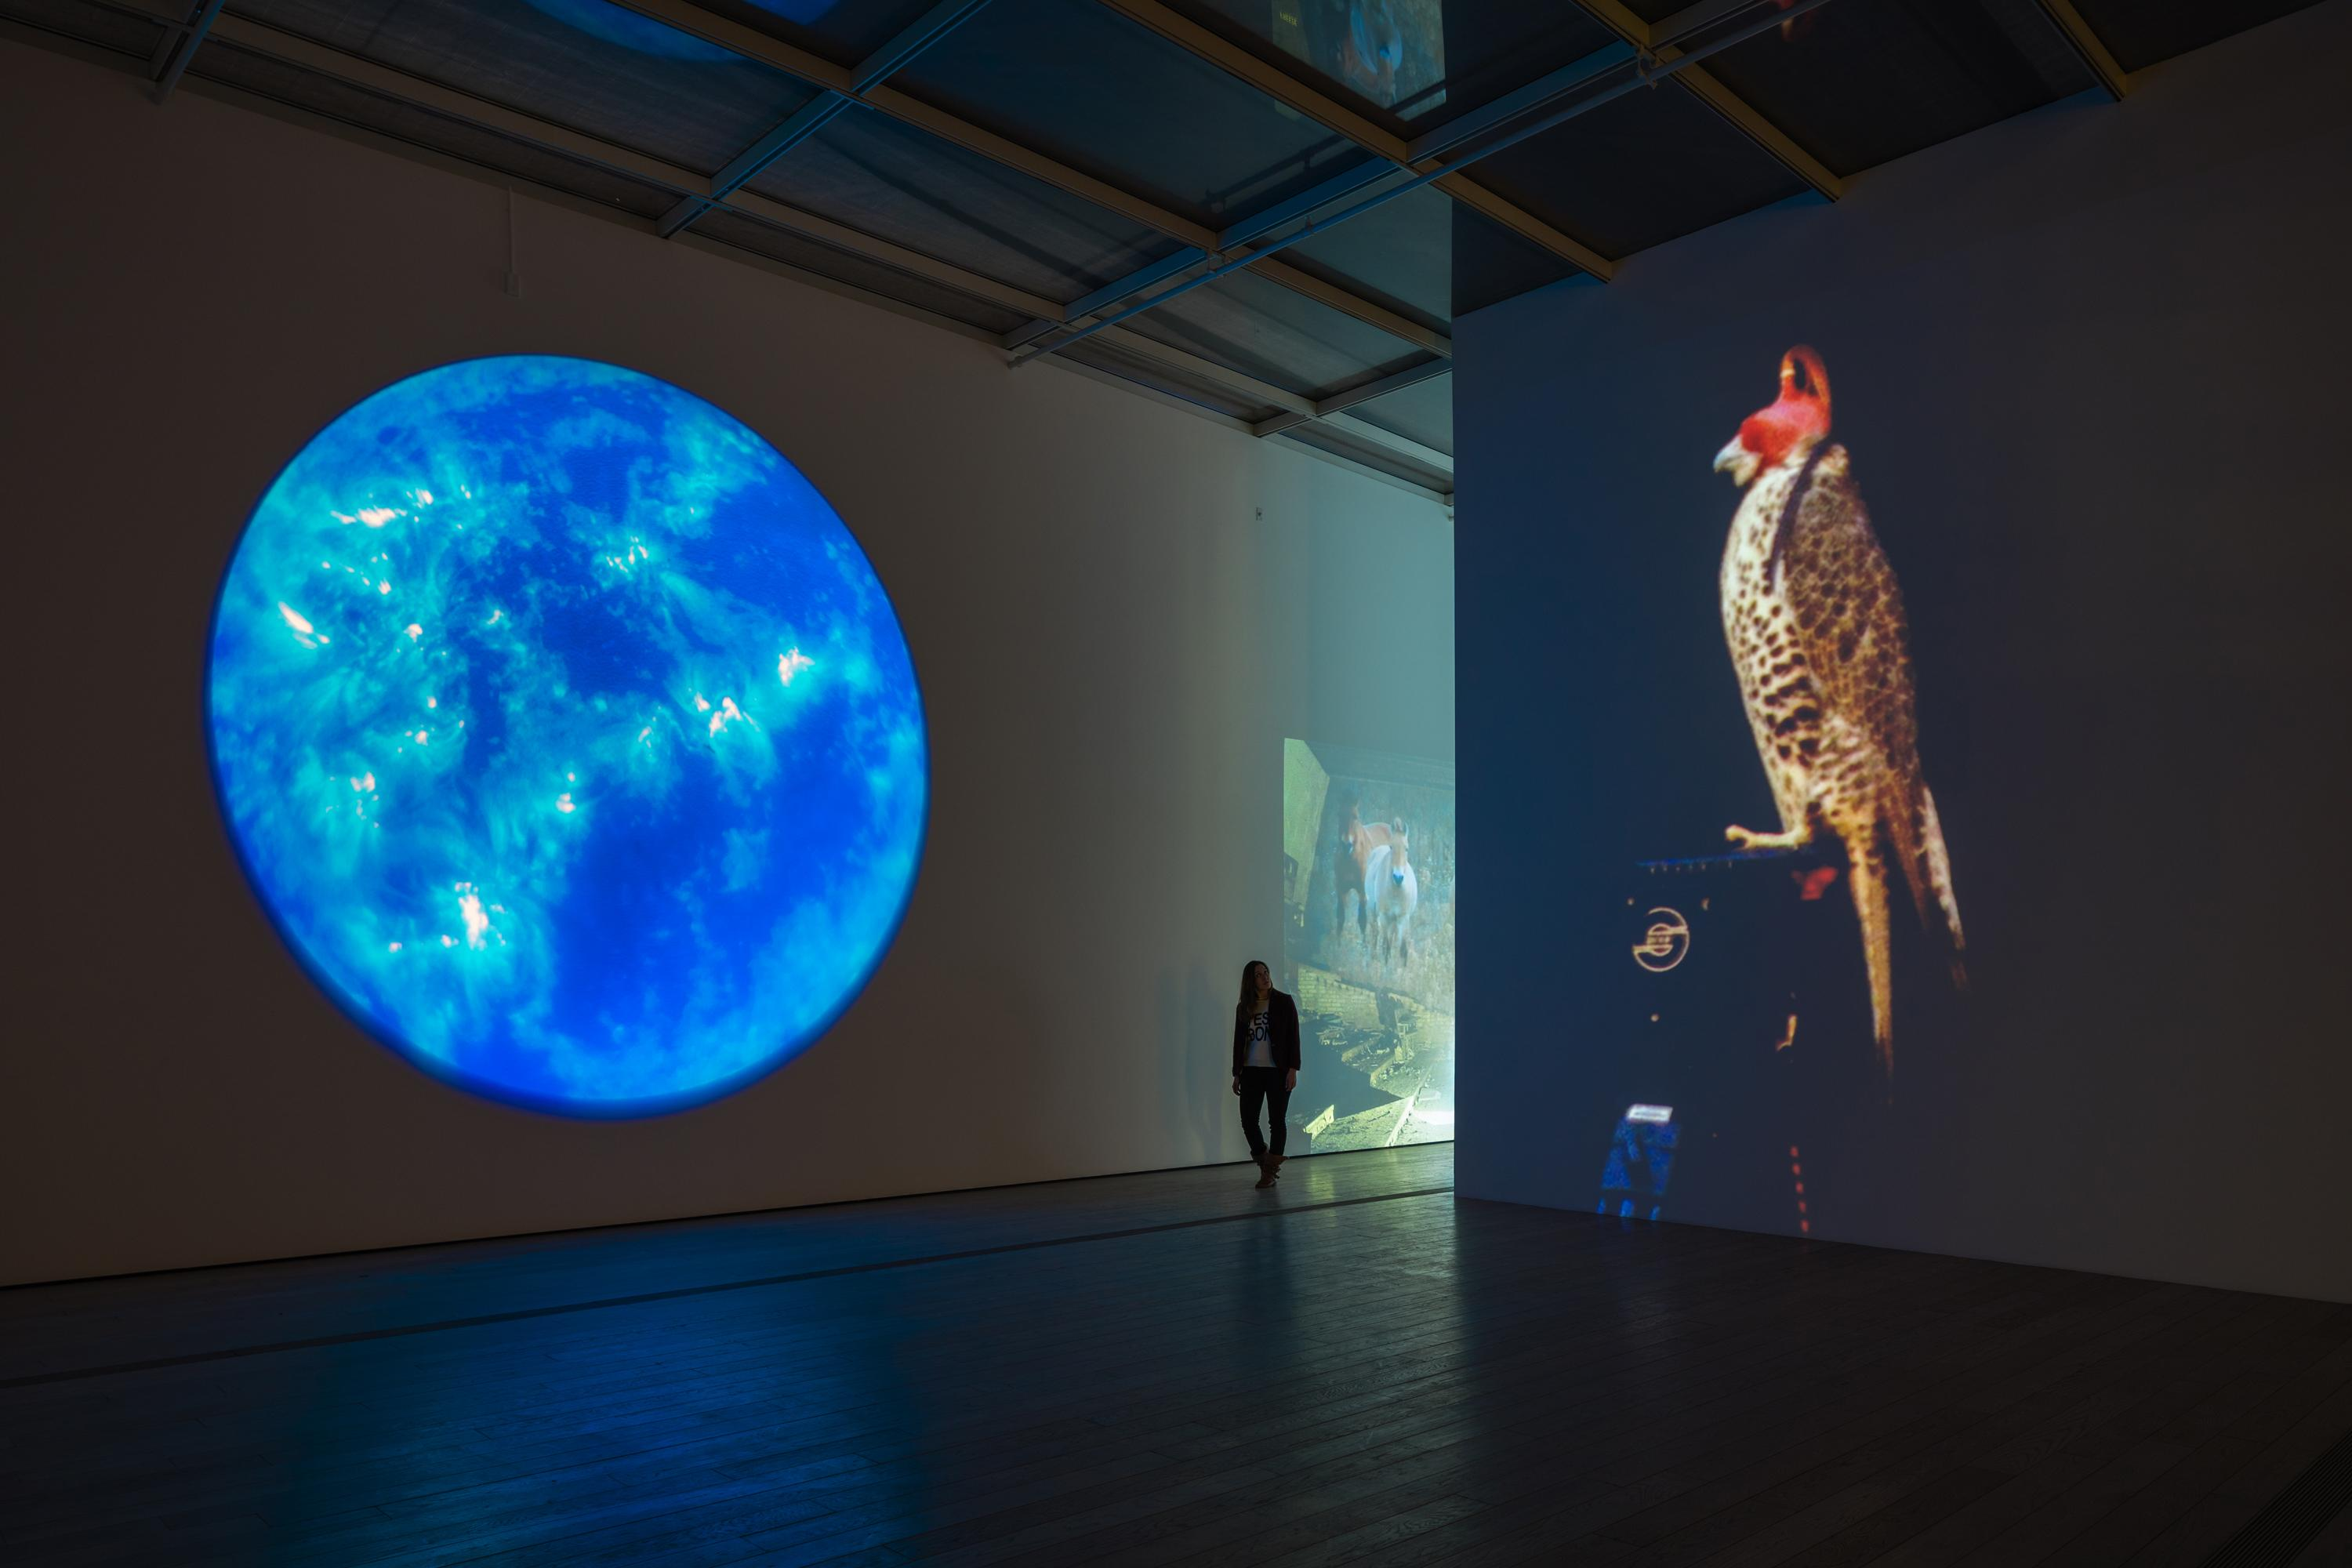 A person walks into an open gallery with large, wall-size video projections shown on two walls. One projection shows a luminous blue planet floating in black space; the other features a brown feathered falcon with a red mask on its head, as it undergoes falconry training.